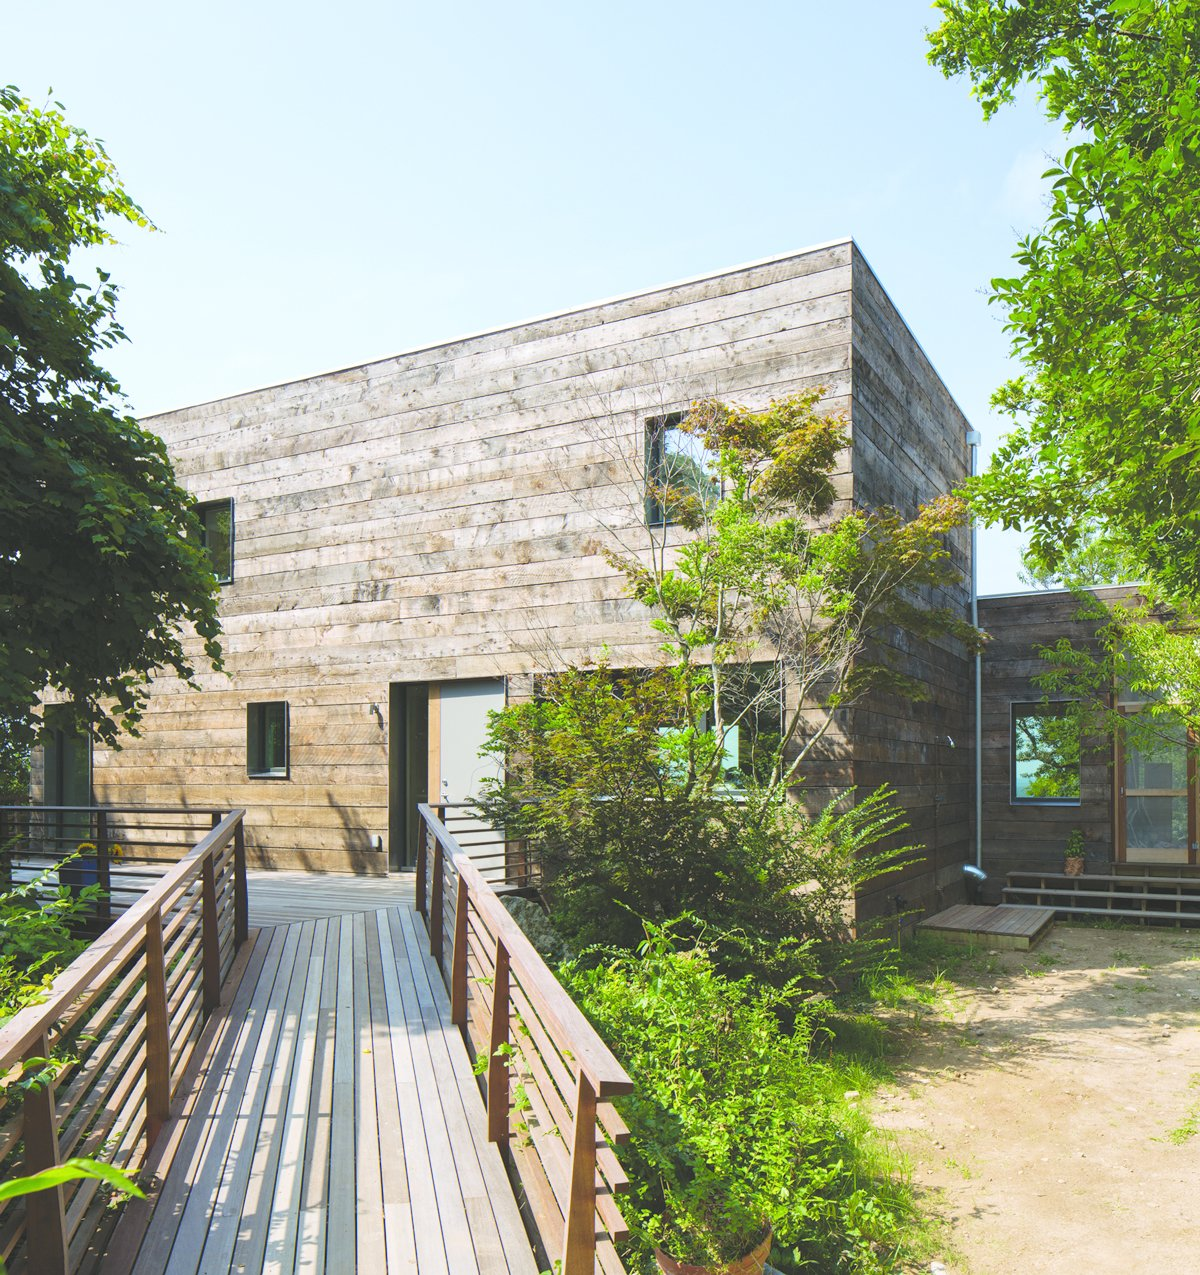 Orient House (2012) on Long Island was an existing structure retrofitted by Ryall Porter Sheridan Architects to conform to Passive House green standards. 15+ Passive Modern Home Ideas by Heather Corcoran